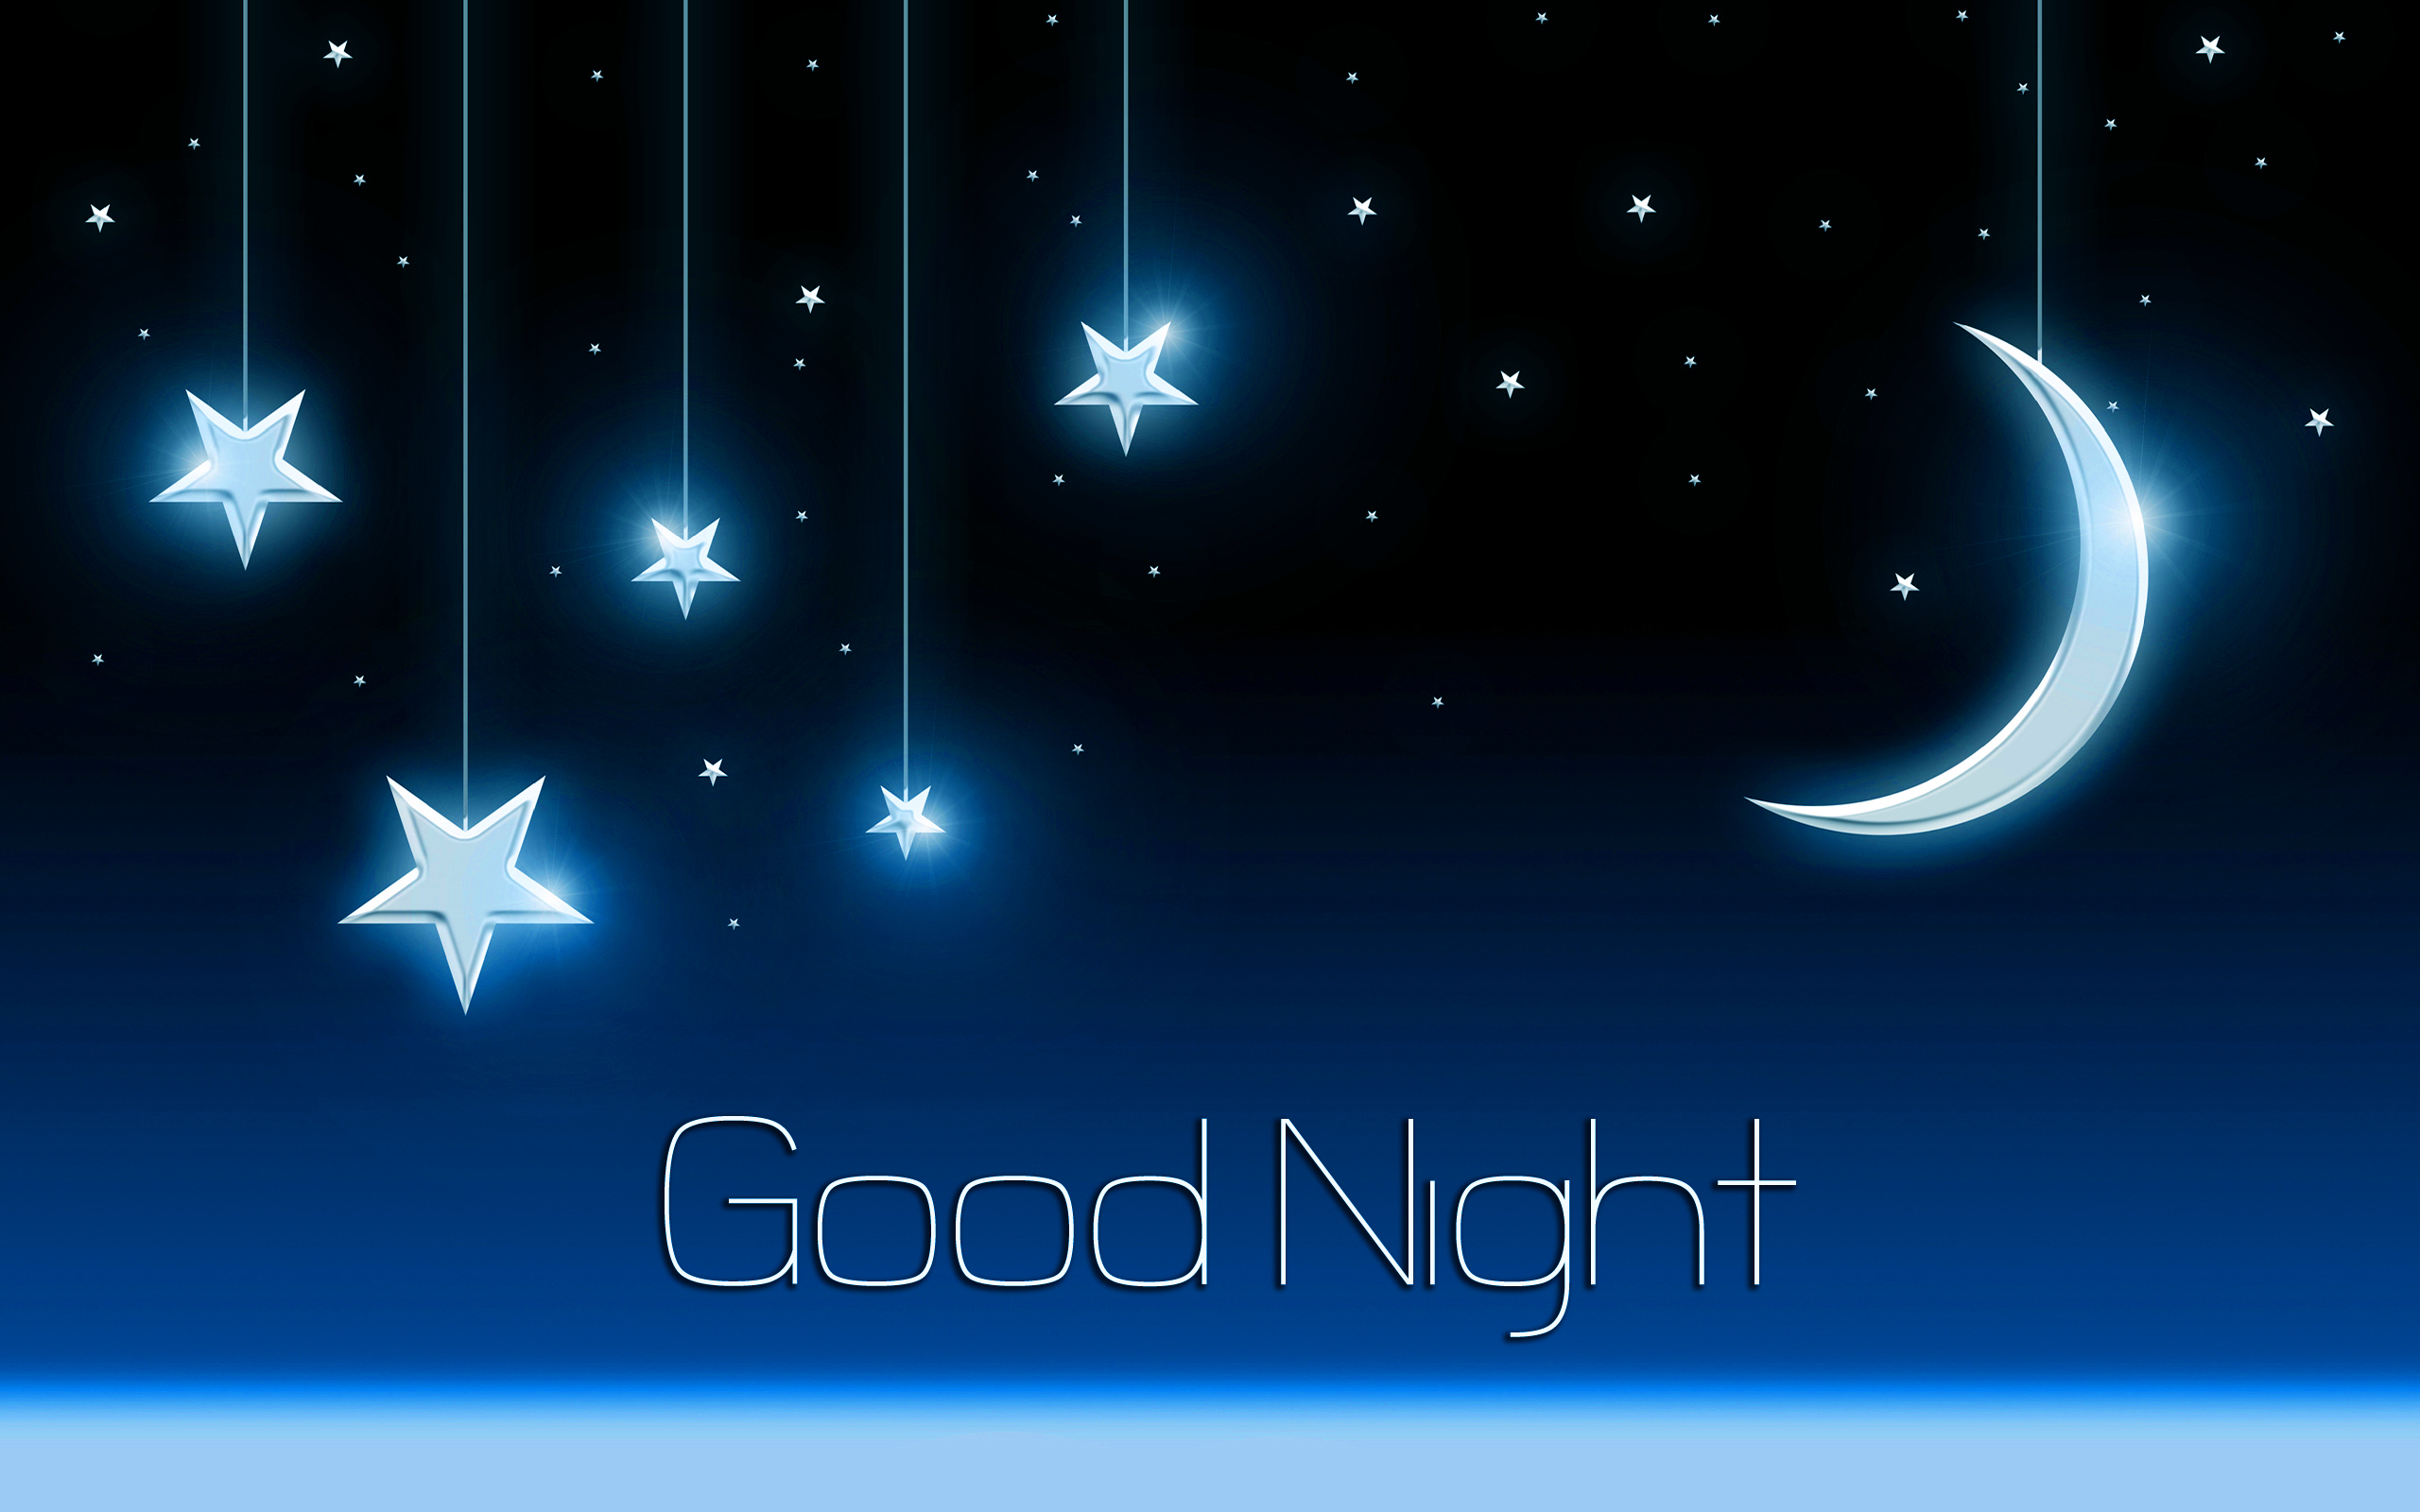 Good Night Clipart Sms.